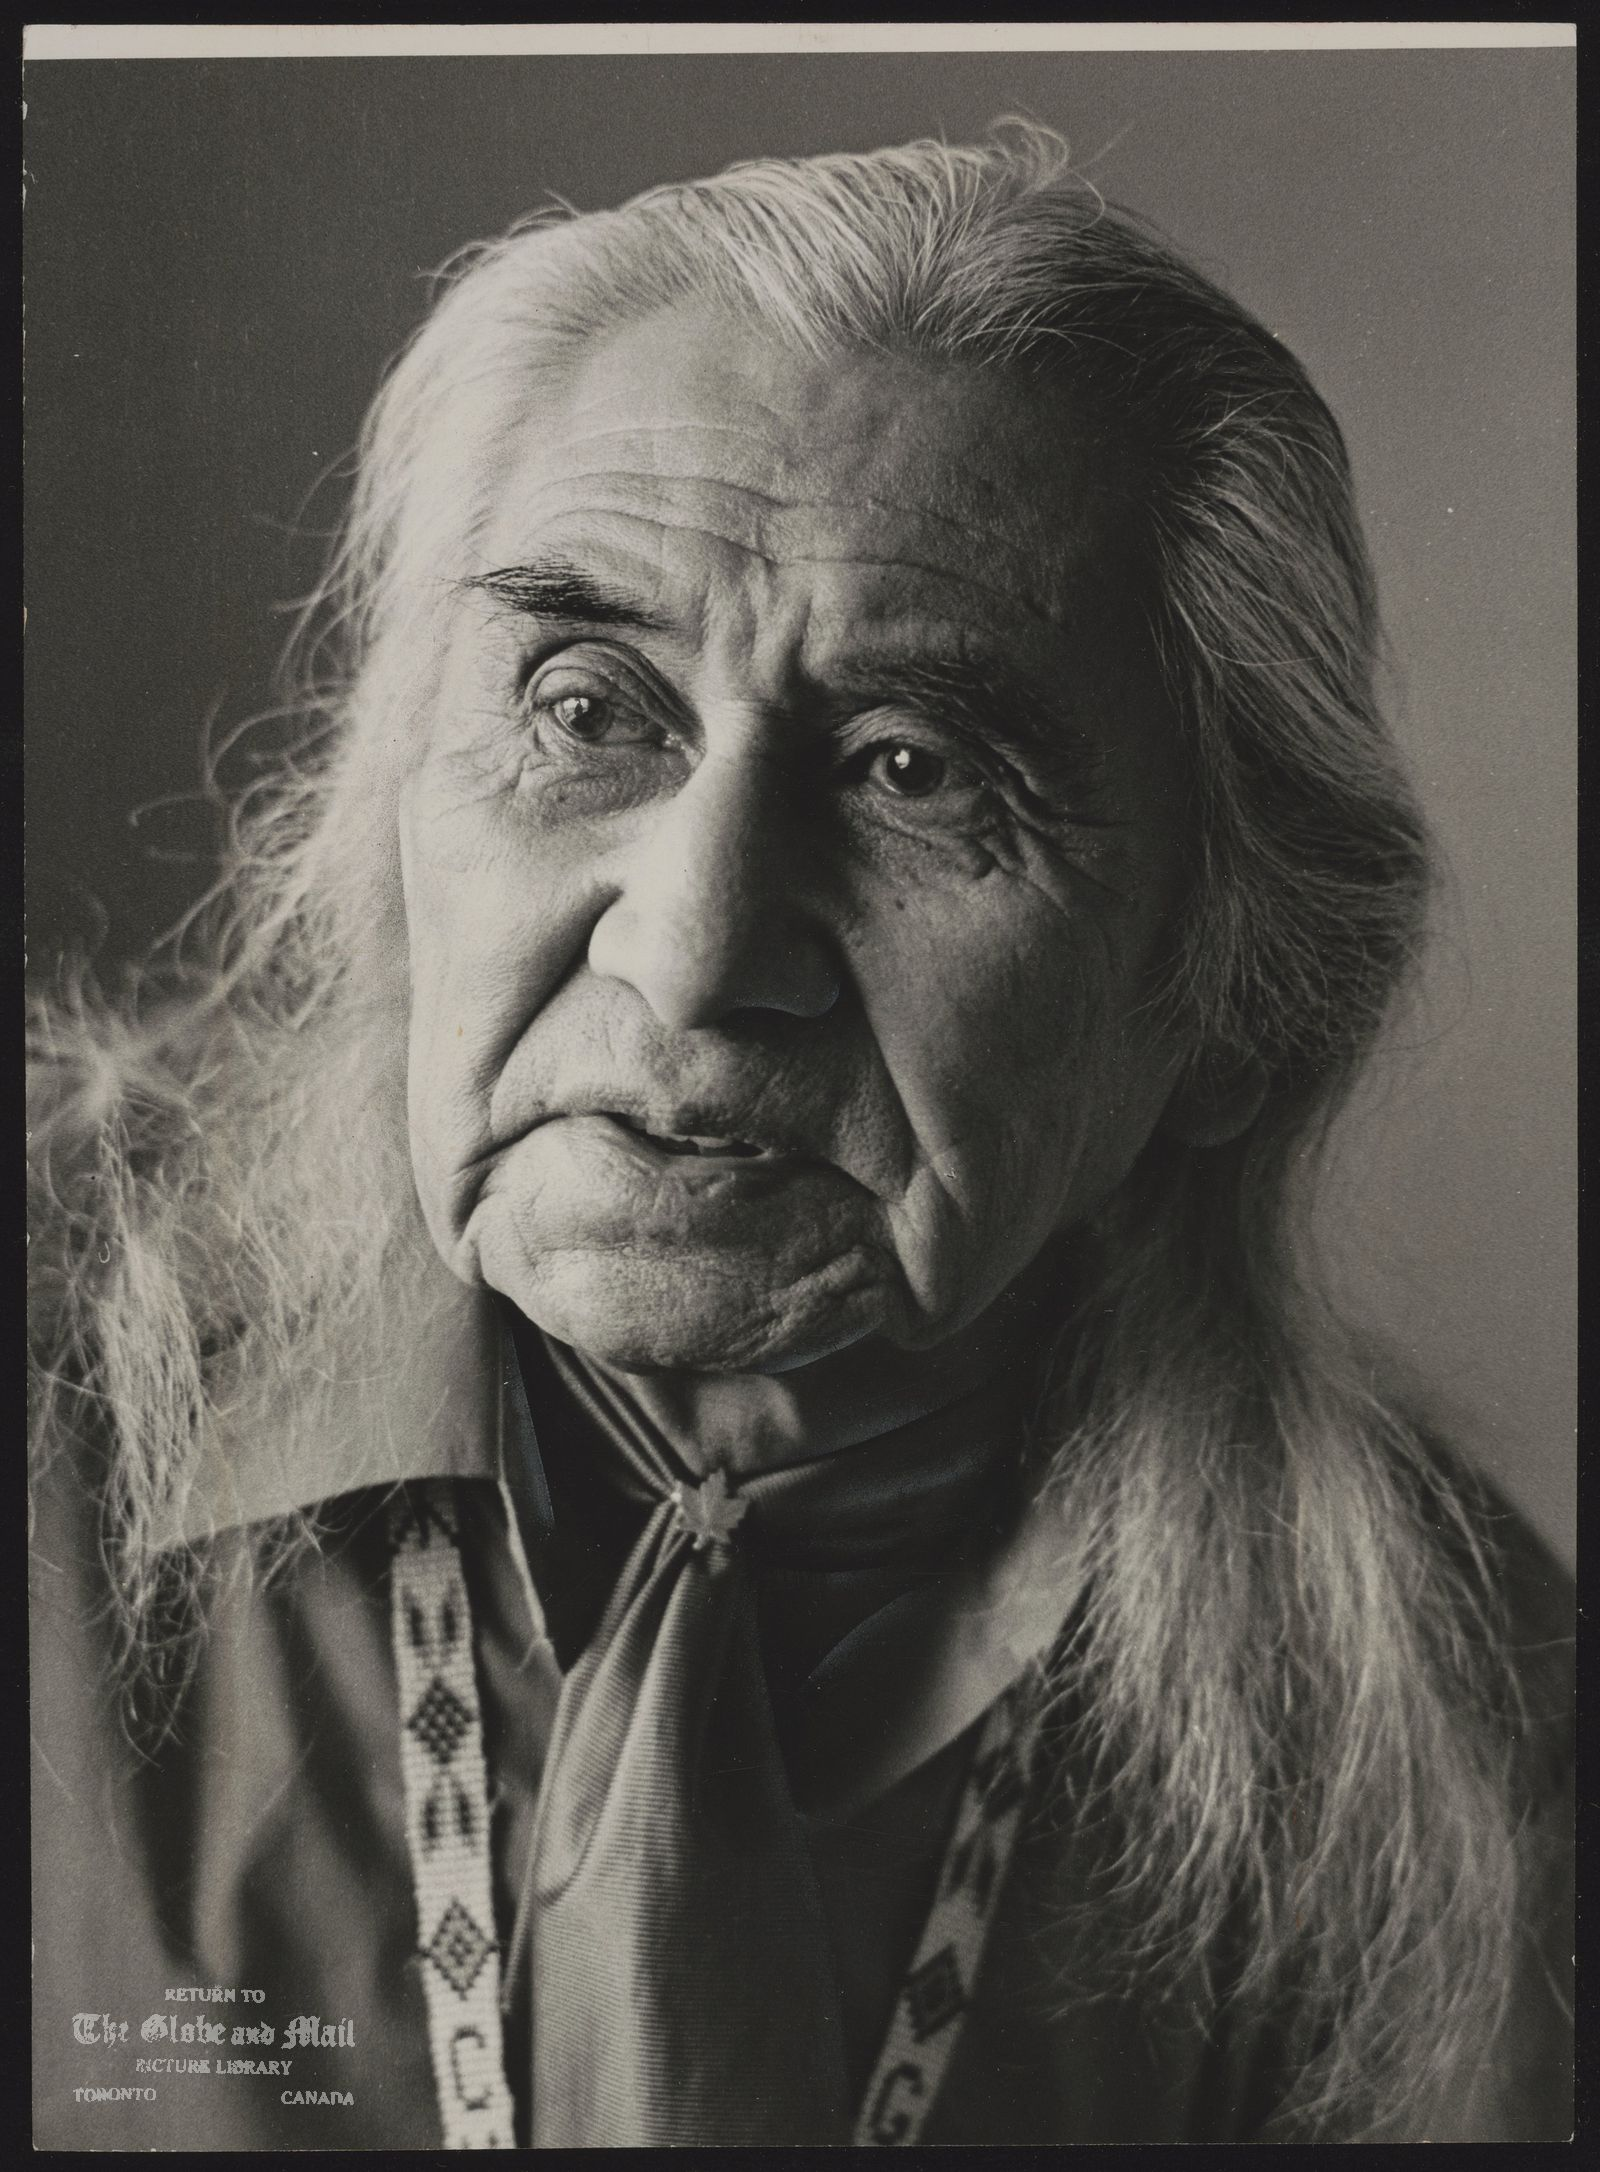 The notes transcribed from the back of this photograph are as follows: Dan GEORGE Vancover. Indian Chief, actor Chief George: truth in unreal world. Chief Dan George is 72 magnificent years old and possessed of grace and great grandfatherly style.